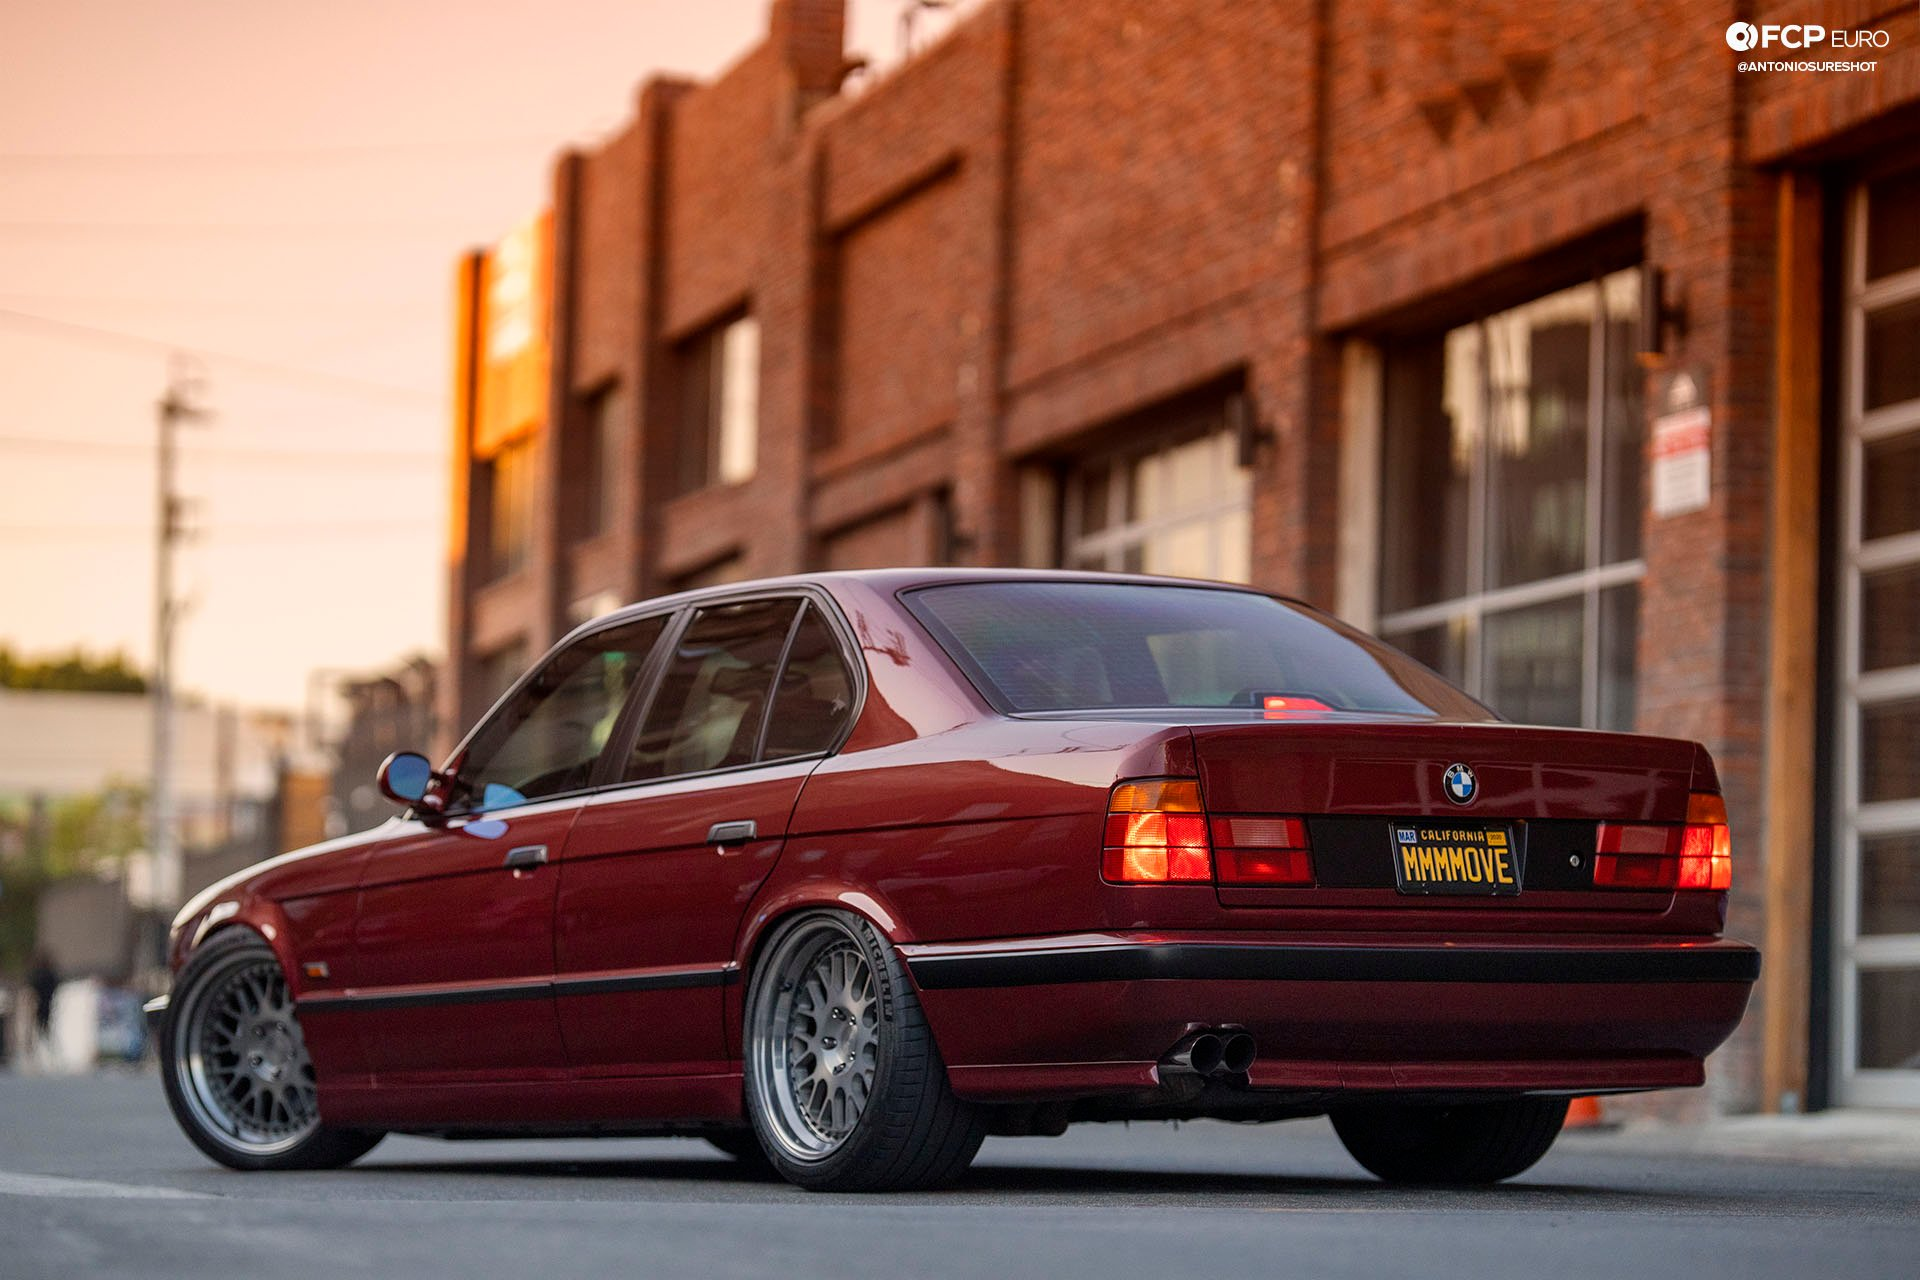 M60B44-Swapped M-Sport Monster – 1995 BMW E34 540i